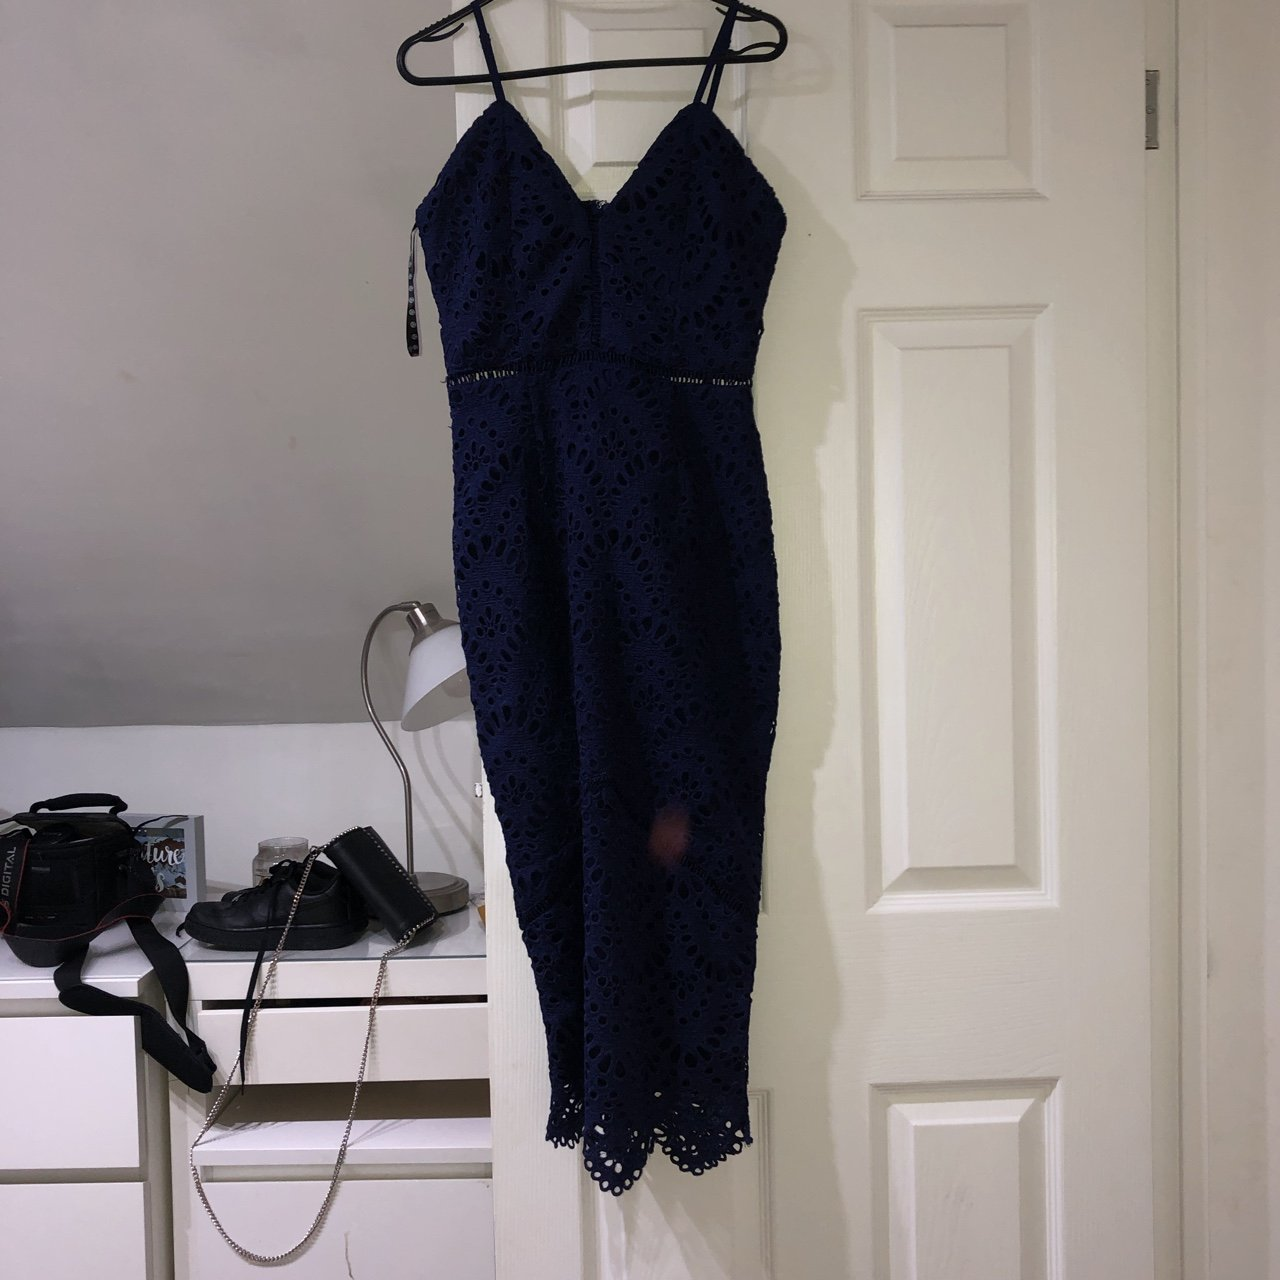 1625e9af48a7e8 Misguided eyelet navy long dress🐻